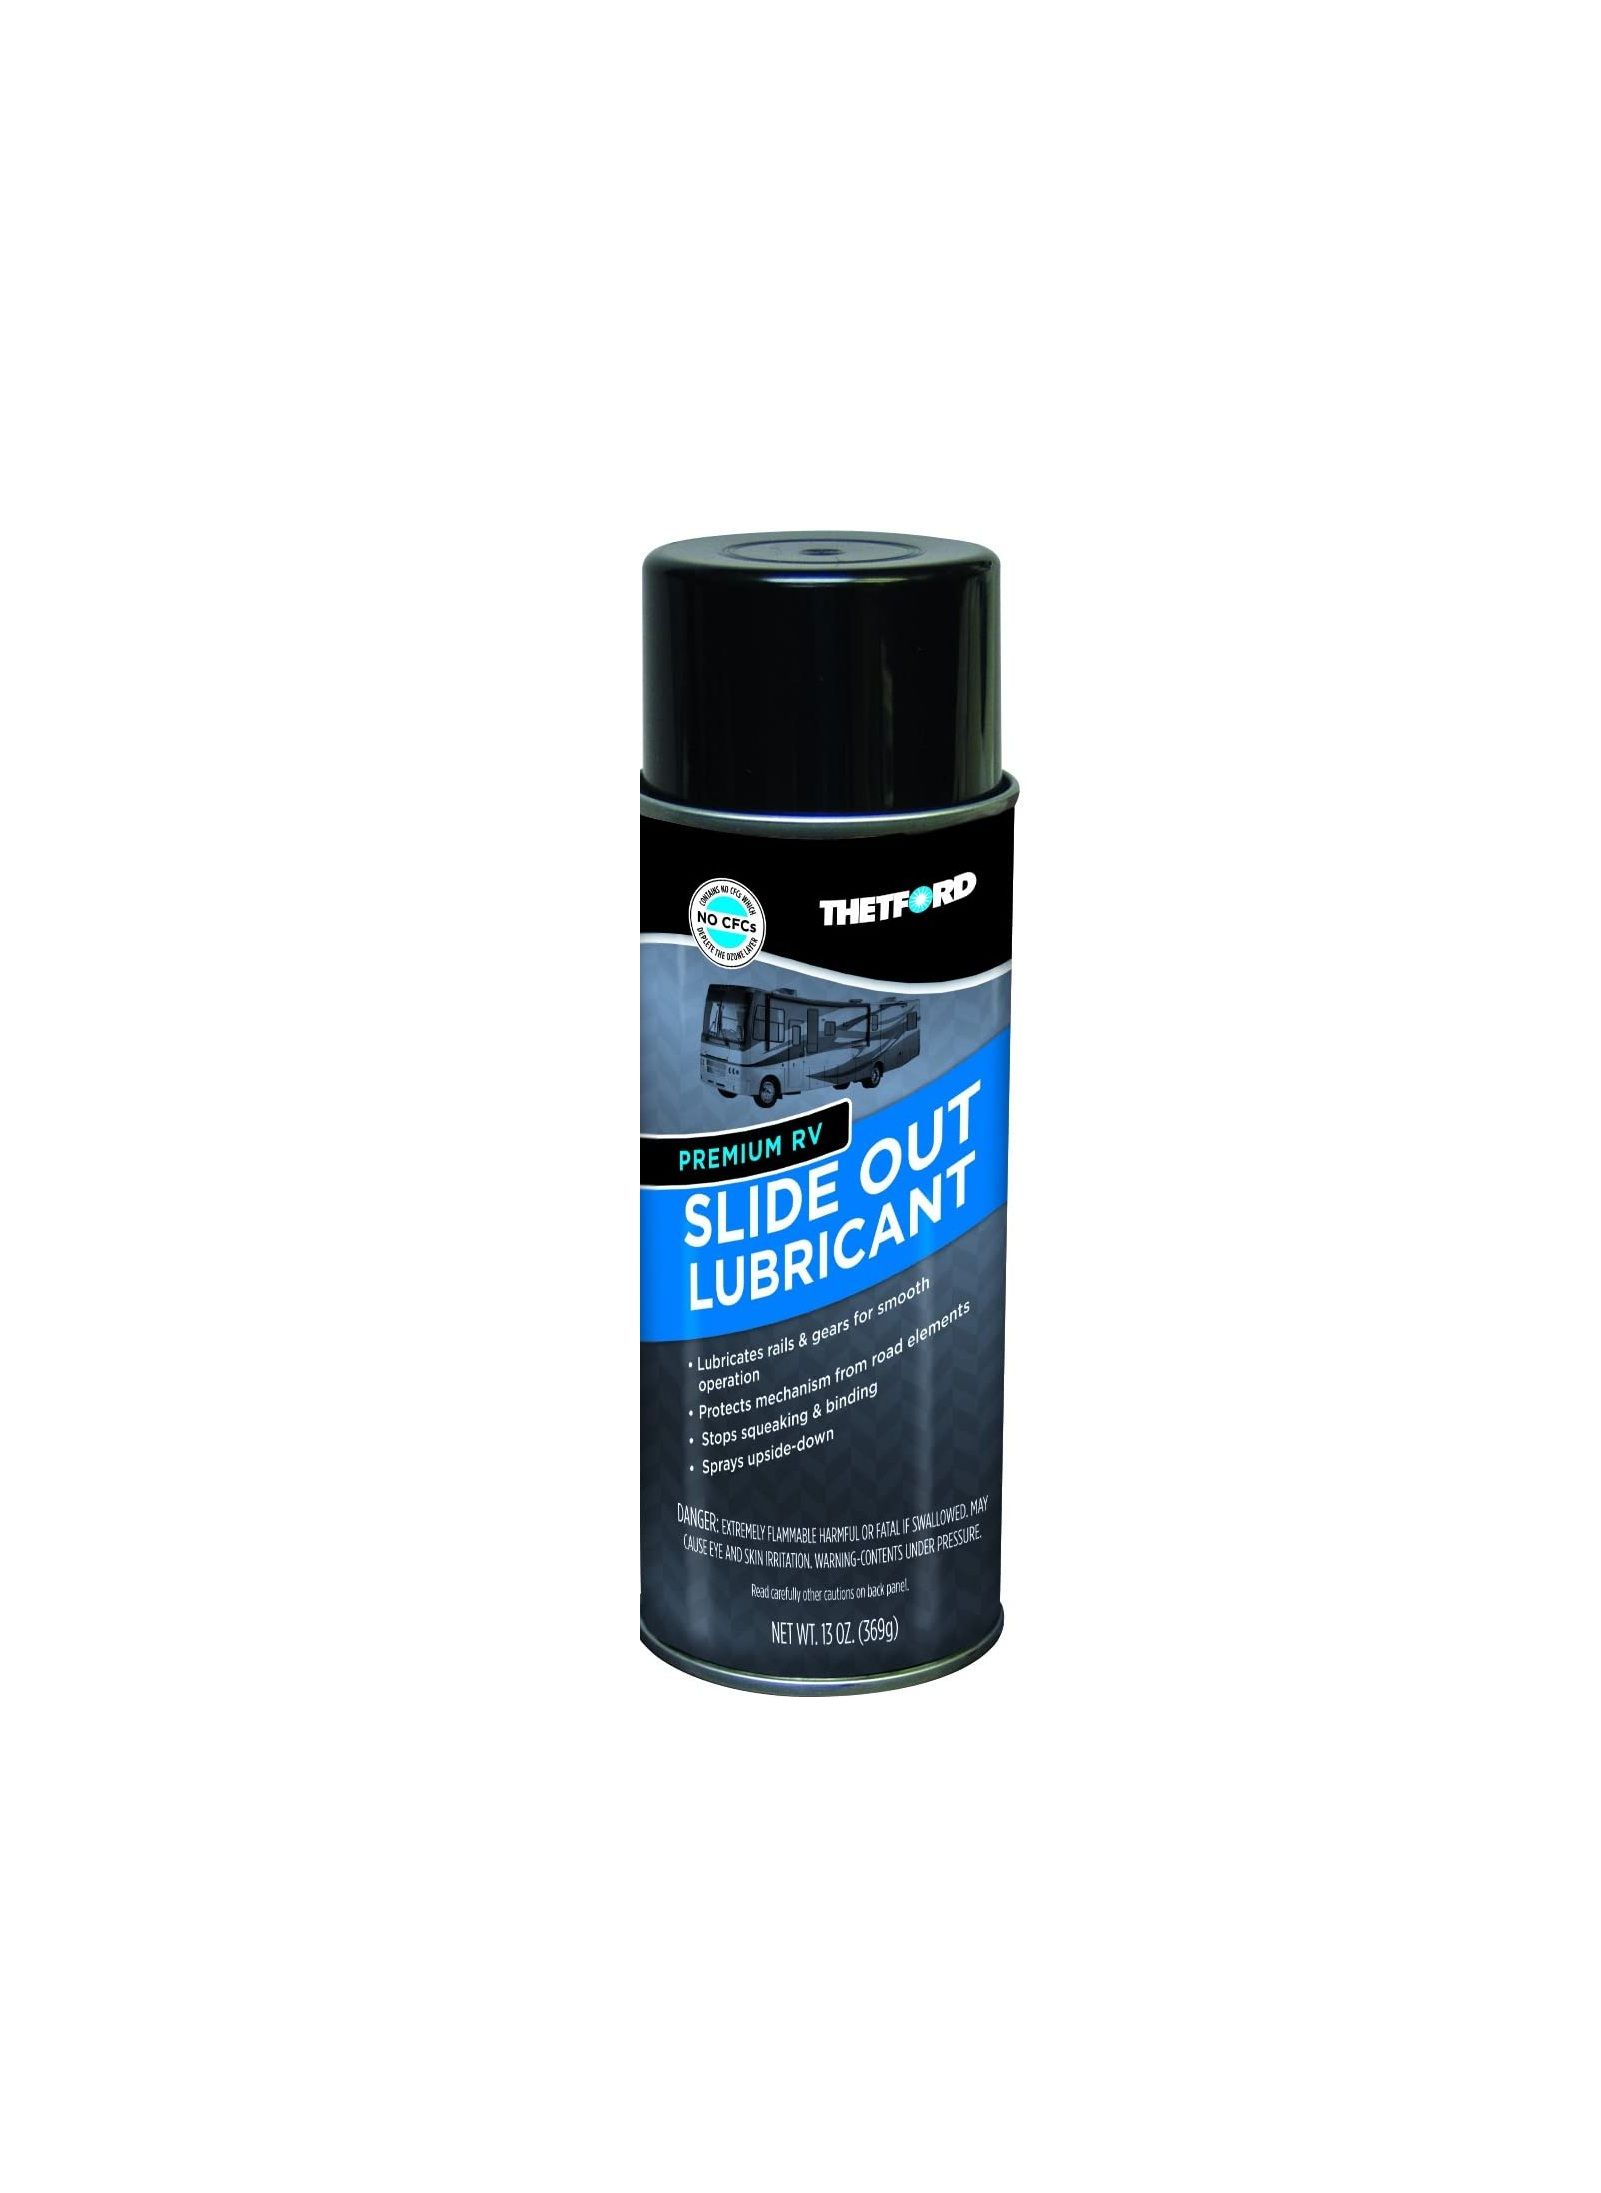 Best Lubricants for RV Slide Out3